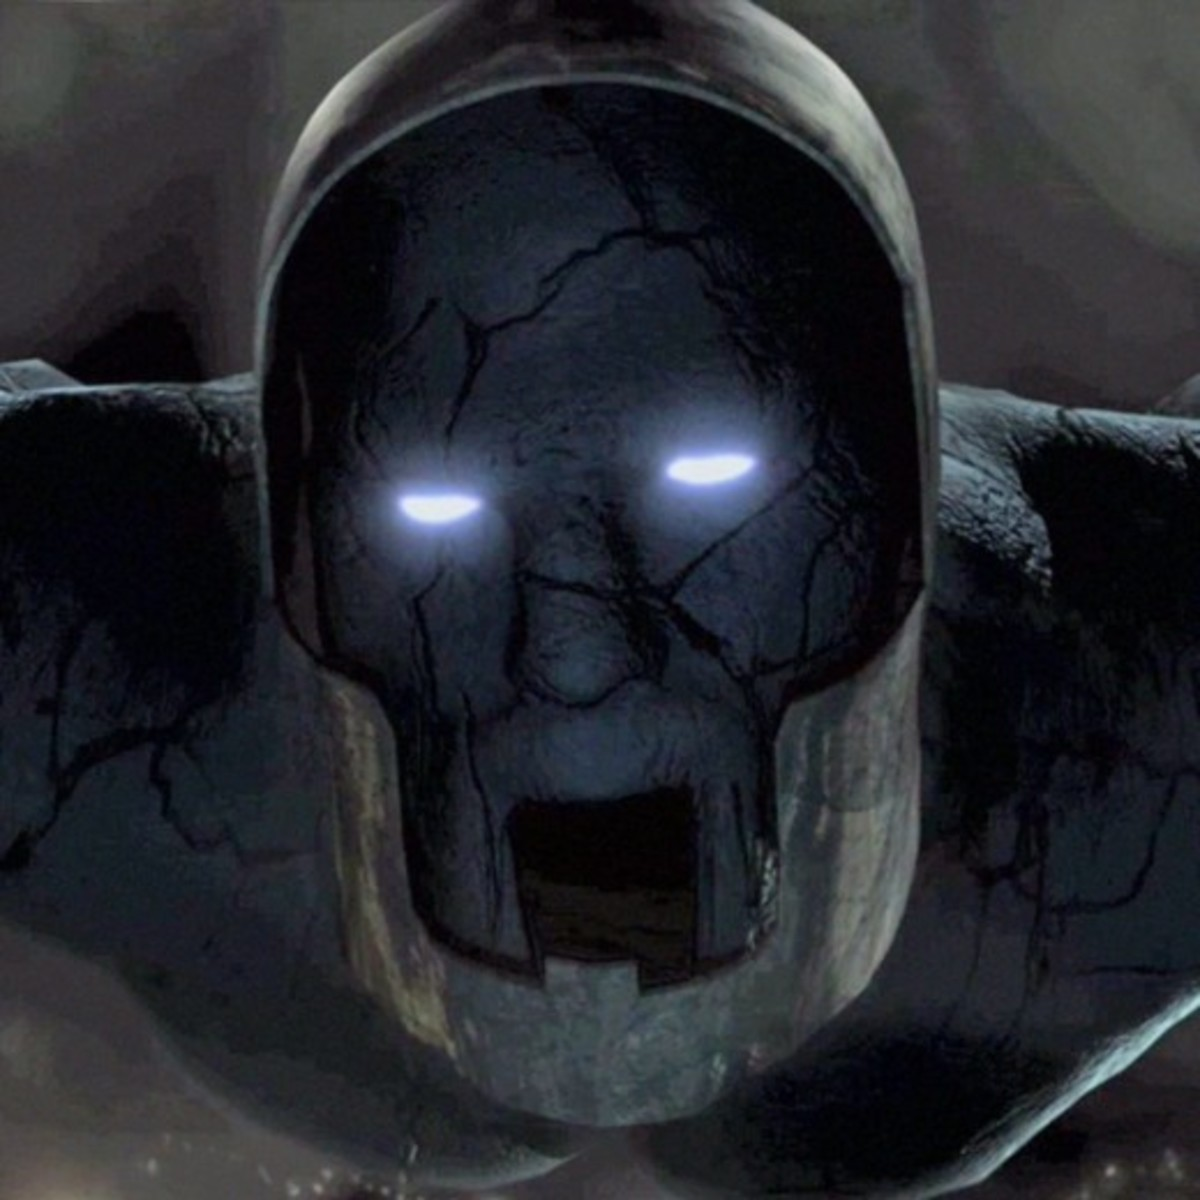 Smallville Darkseid